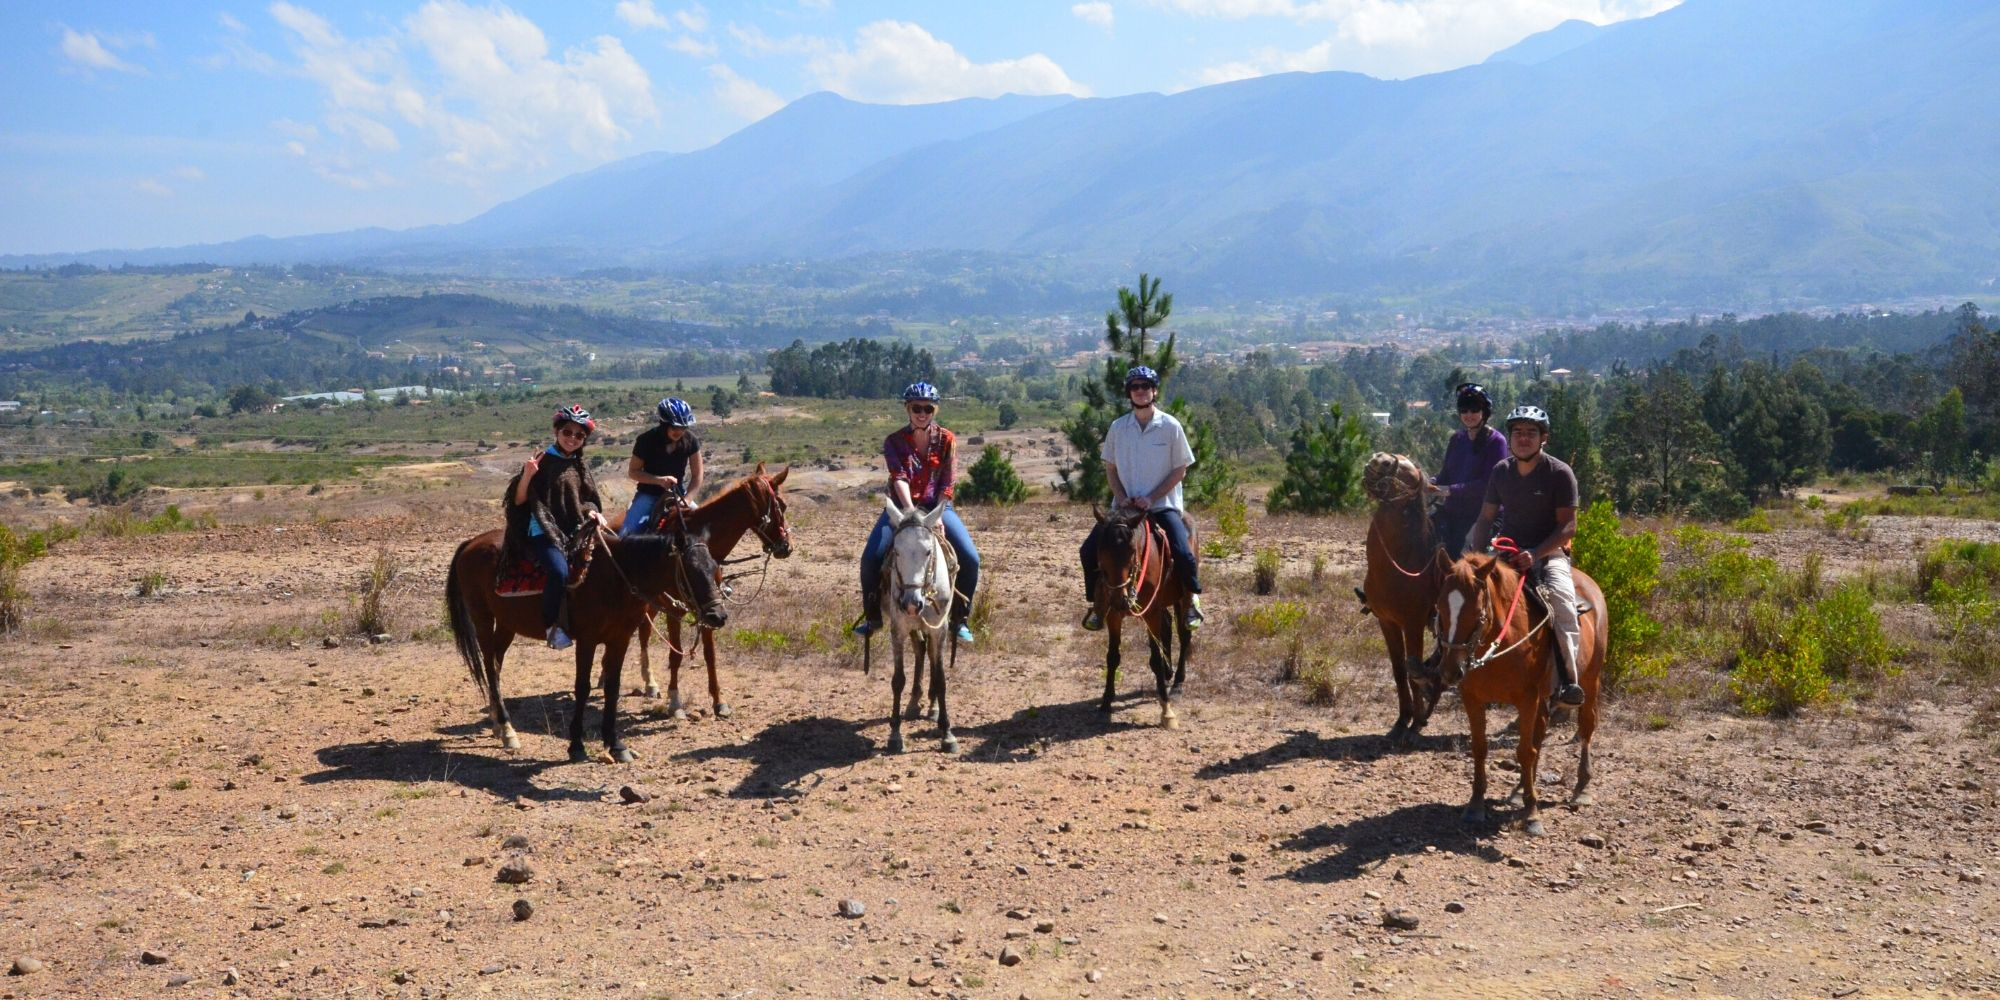 riding horses in Colombia on family trip